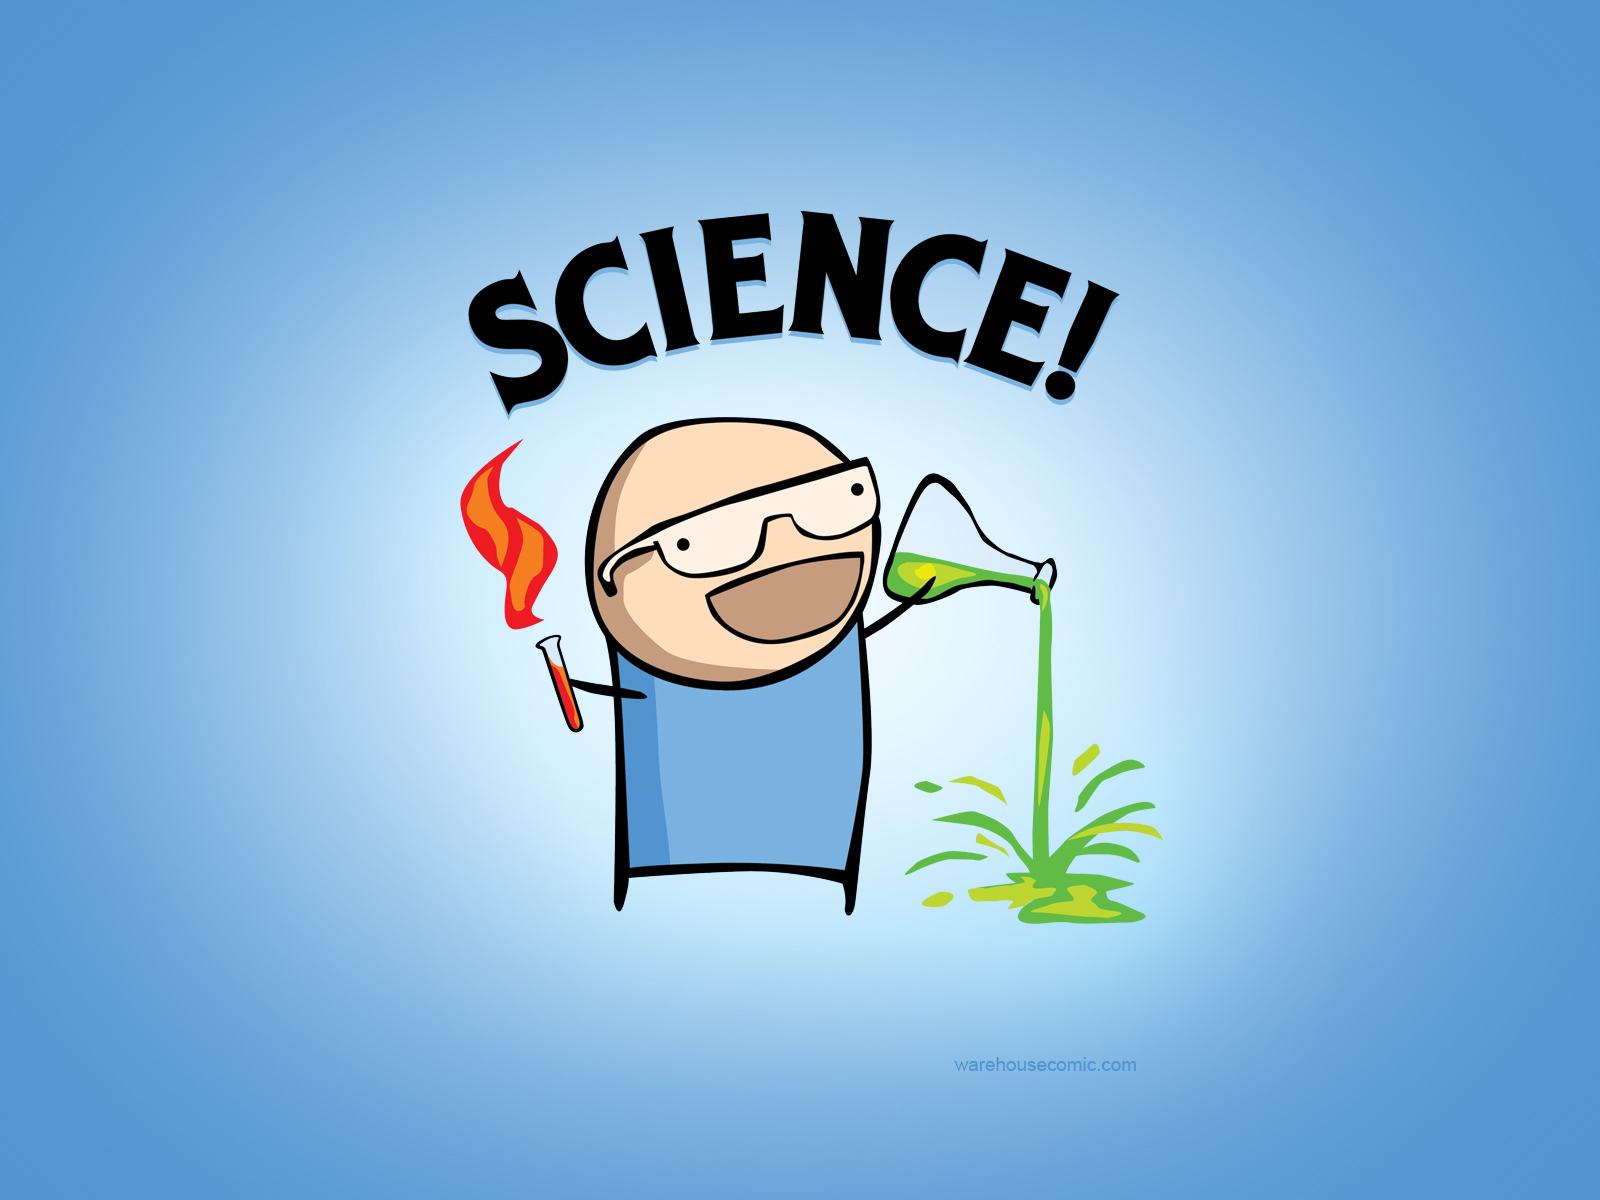 Awesome Science Wallpaper 11892